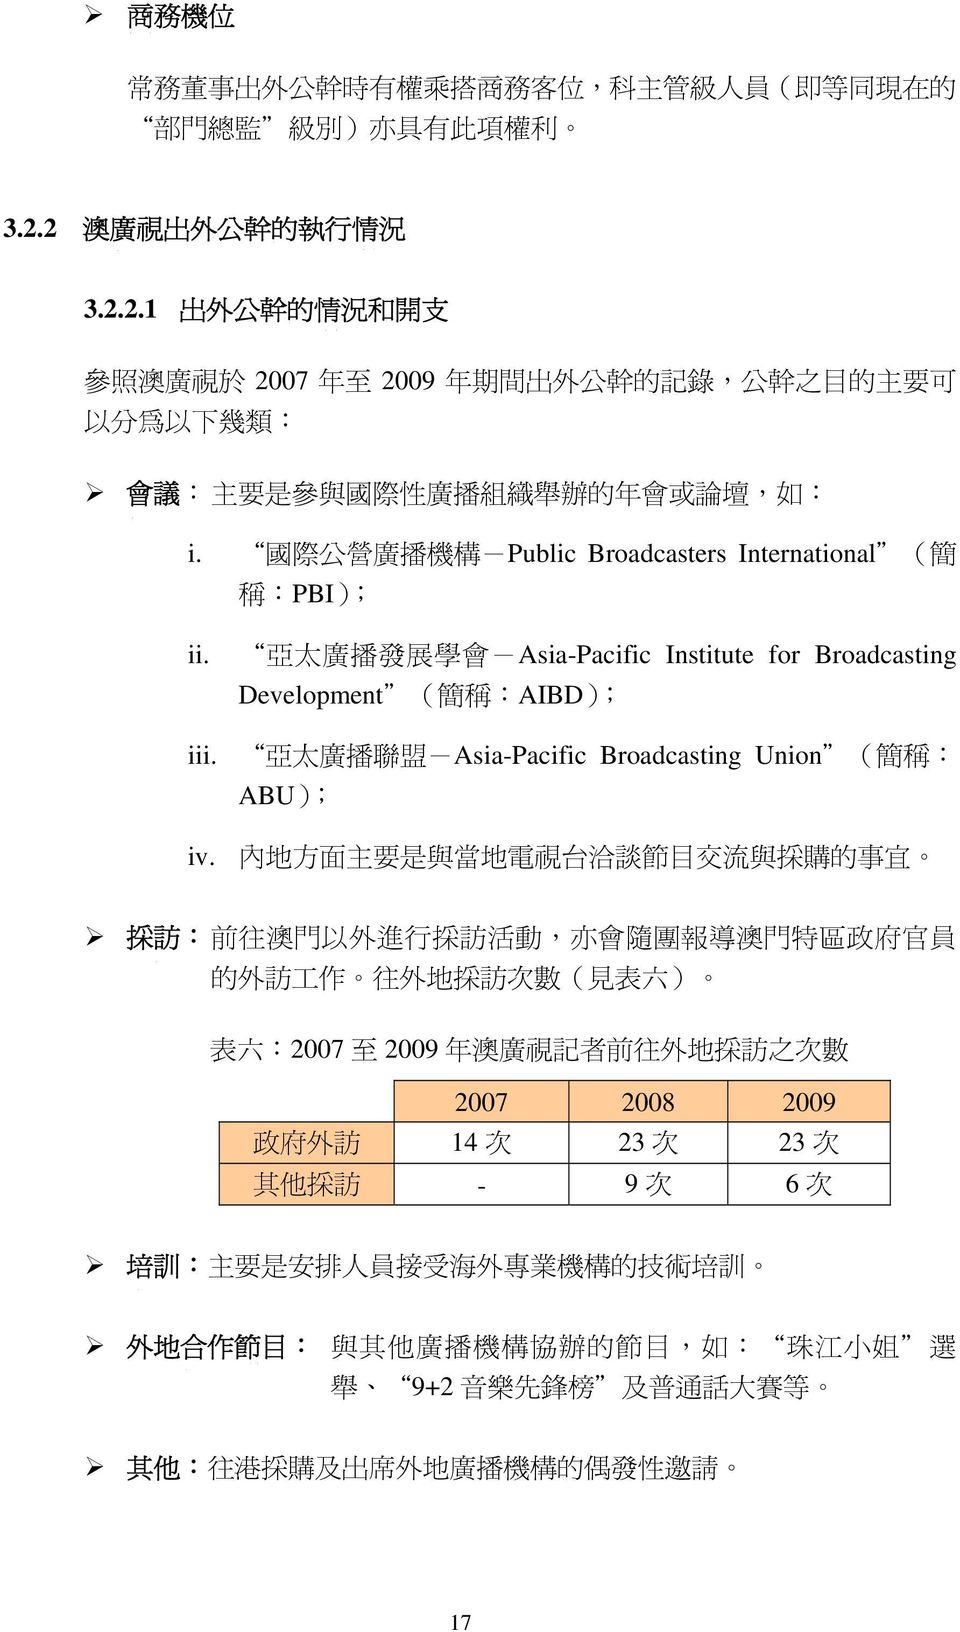 "國 際 公 營 廣 播 機 構 -Public Broadcasters International""( 簡 稱 :PBI); ii. 亞 太 廣 播 發 展 學 會 -Asia-Pacific Institute for Broadcasting Development""( 簡 稱 :AIBD); iii."